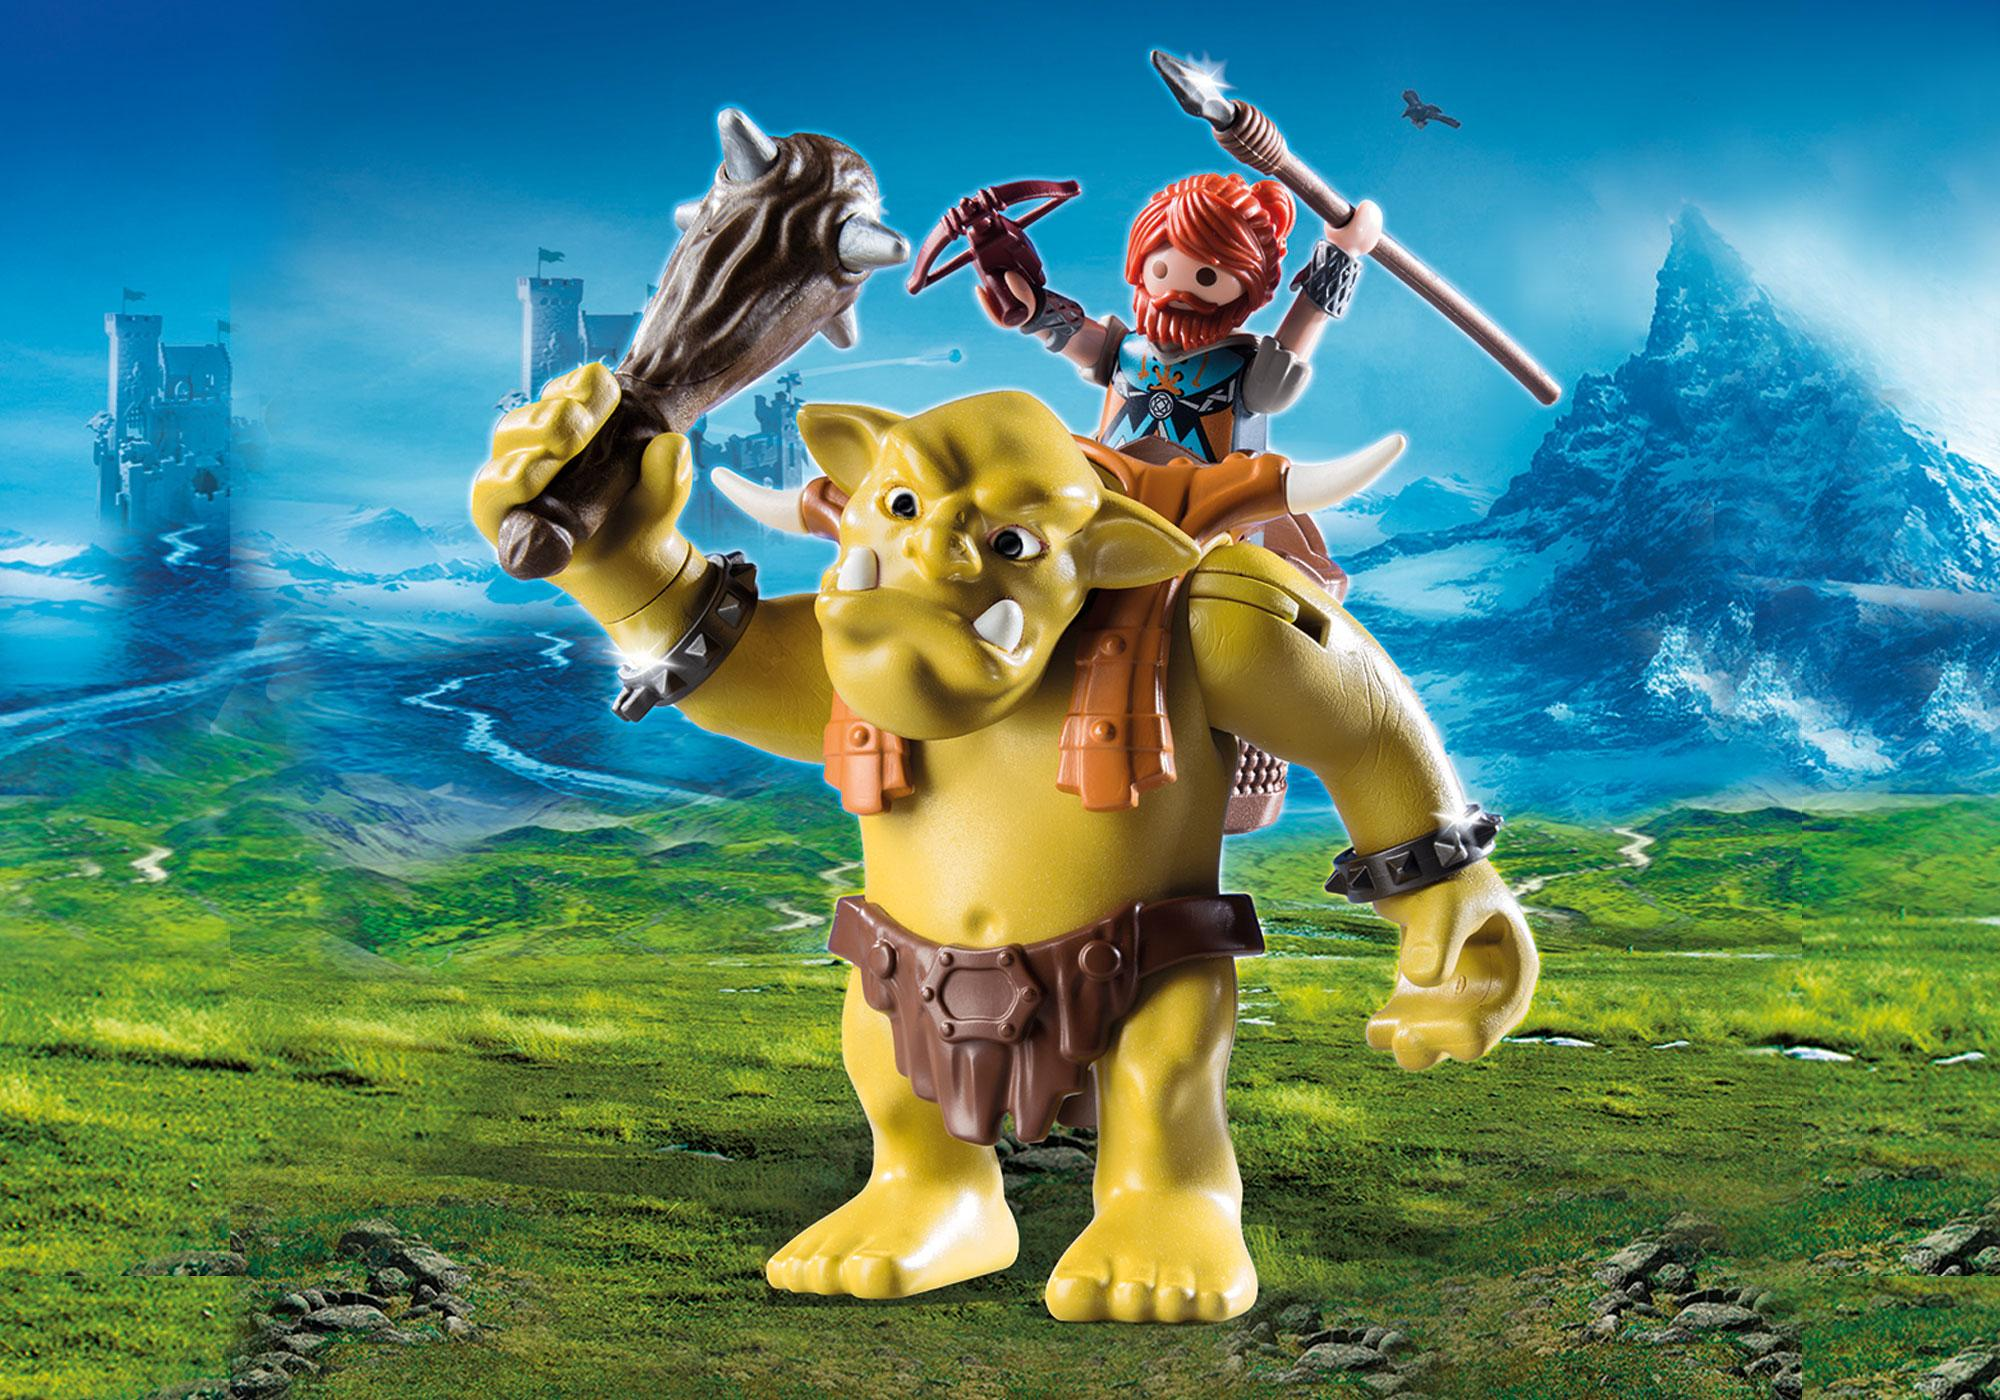 http://media.playmobil.com/i/playmobil/9343_product_detail/Guerriero con Troll Gigante